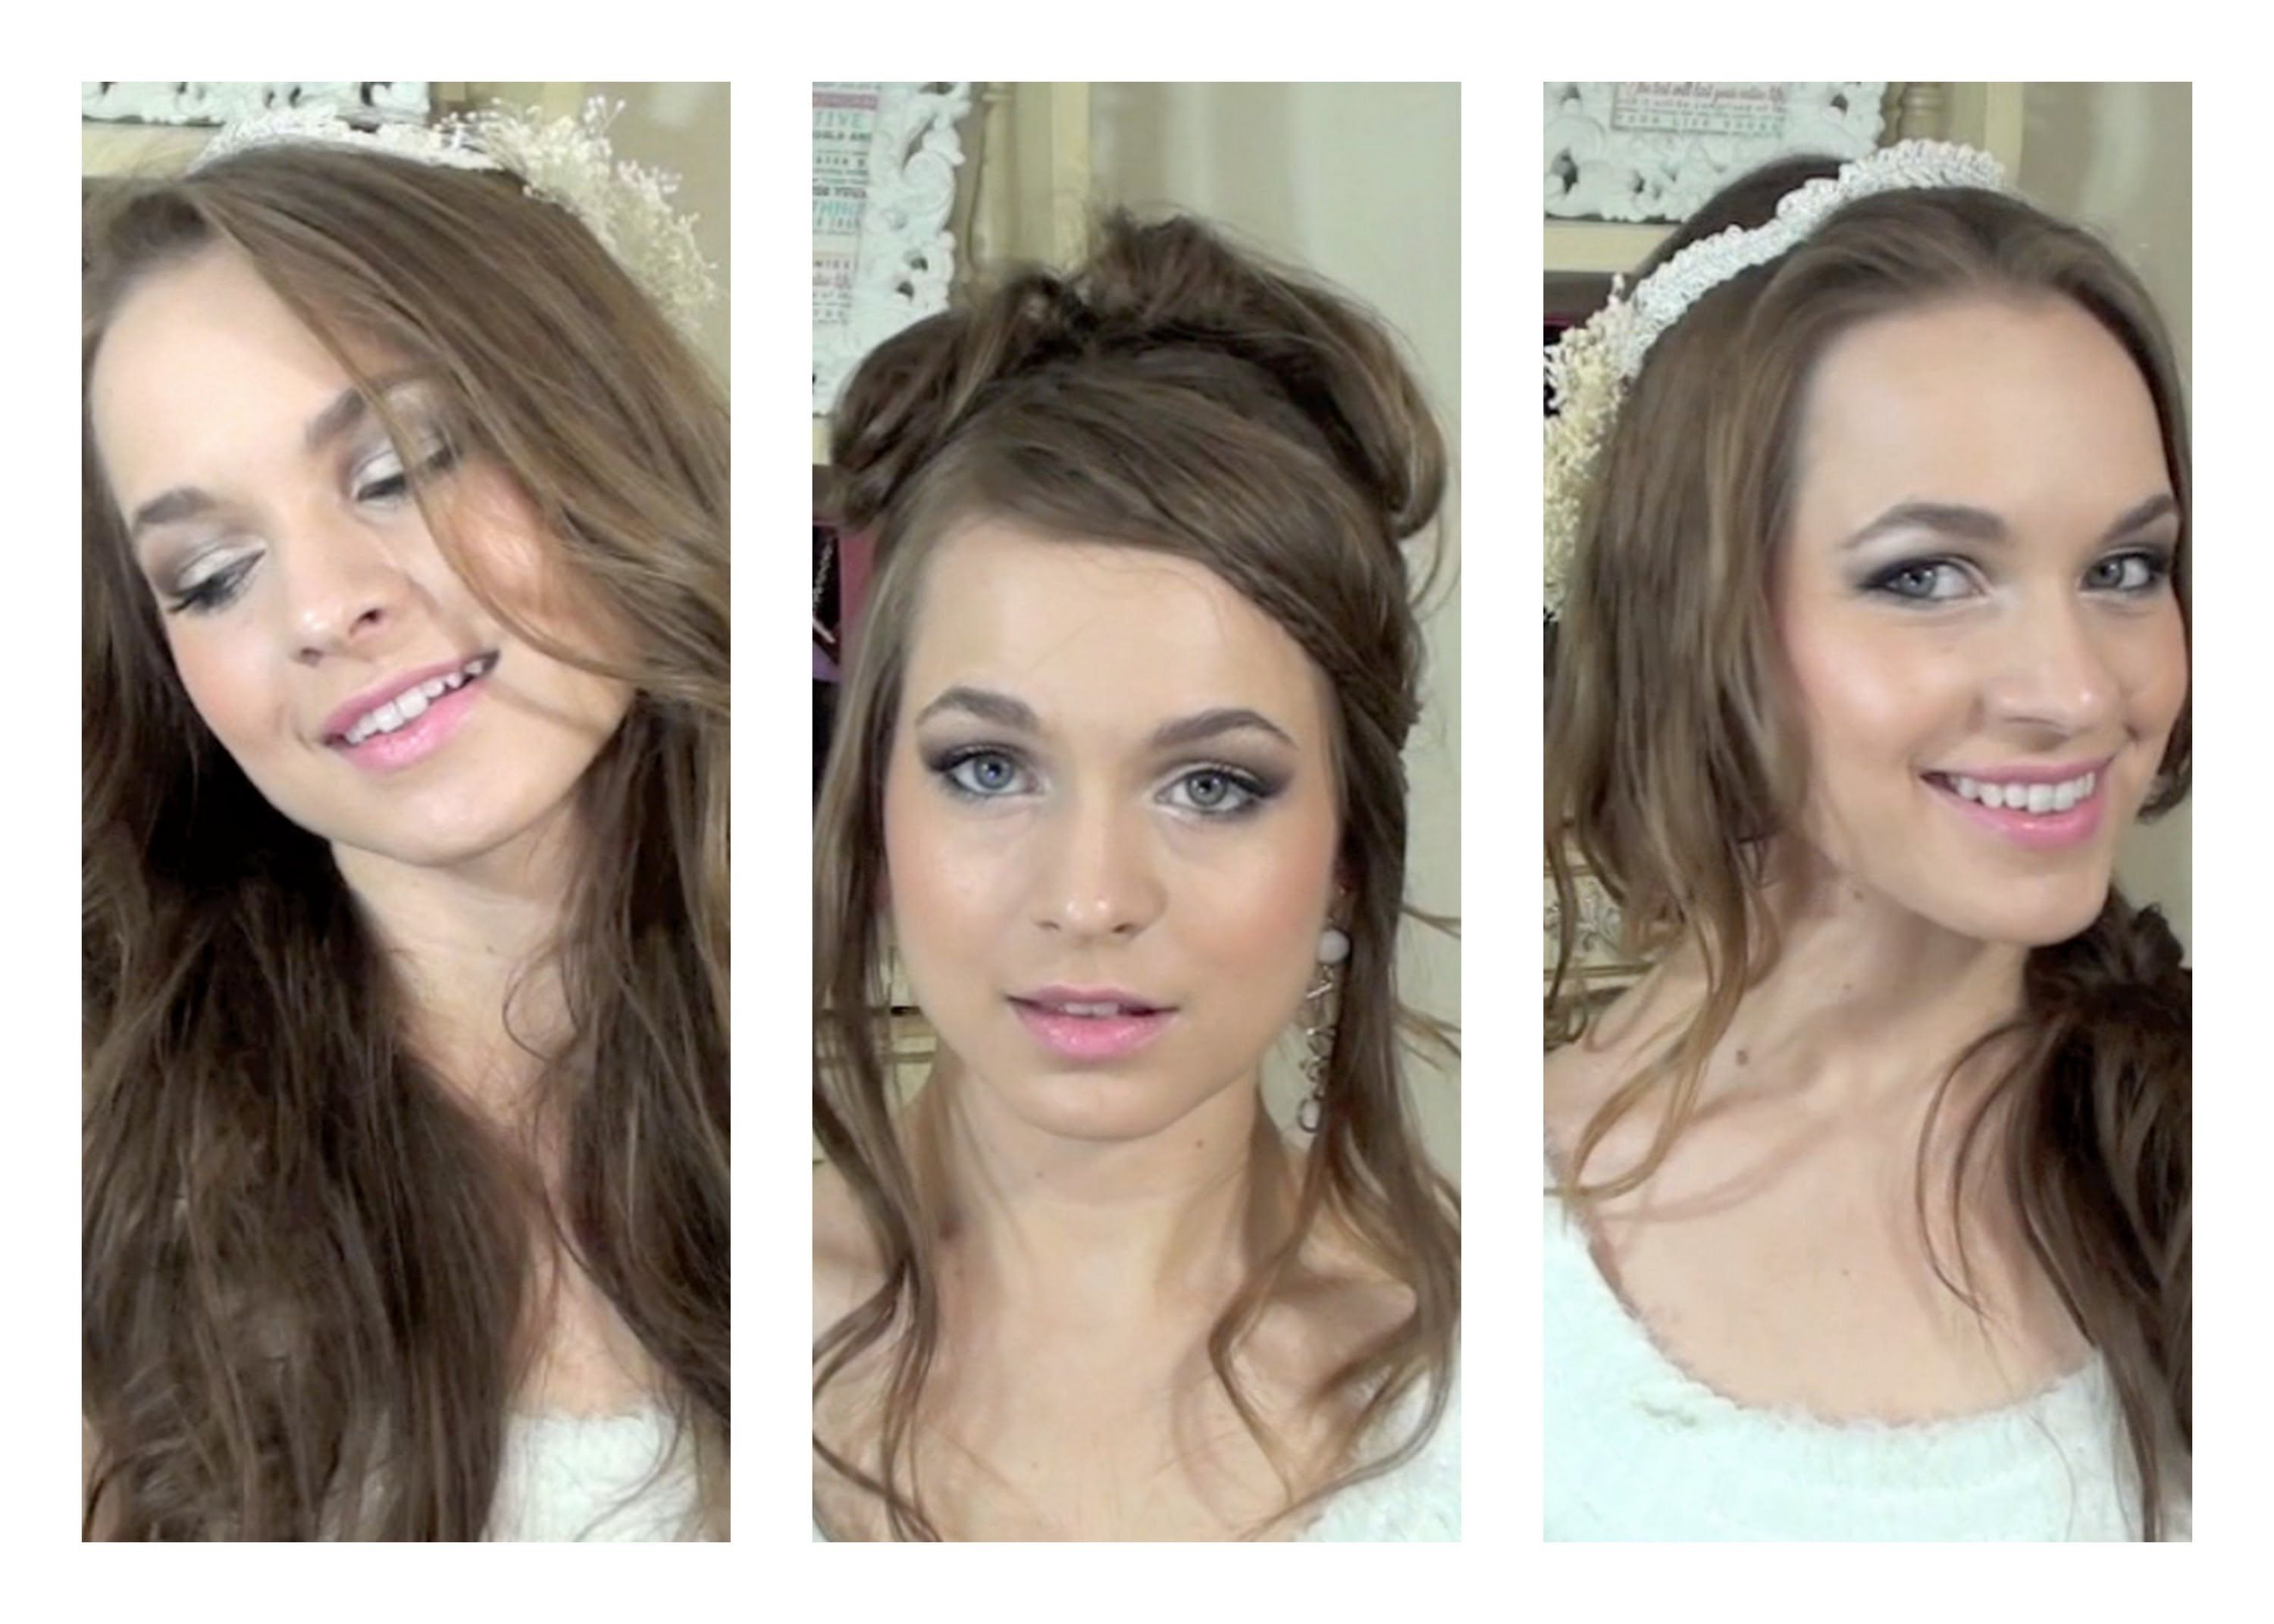 3 fairy / angel / tinkerbell hairstyles for halloween